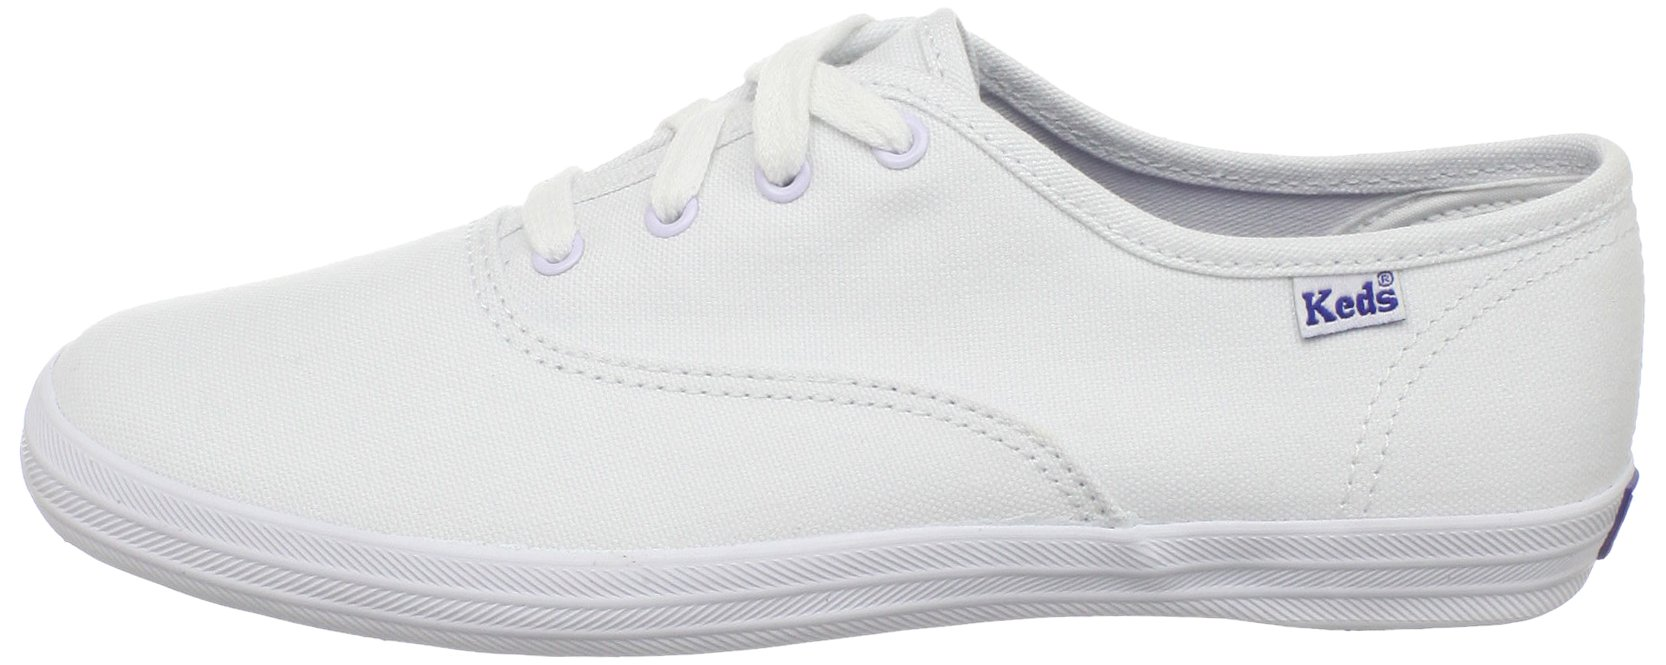 Keds girls Original Champion CVO Sneaker ,White Canvas,1 W US Little Kid by Keds (Image #5)